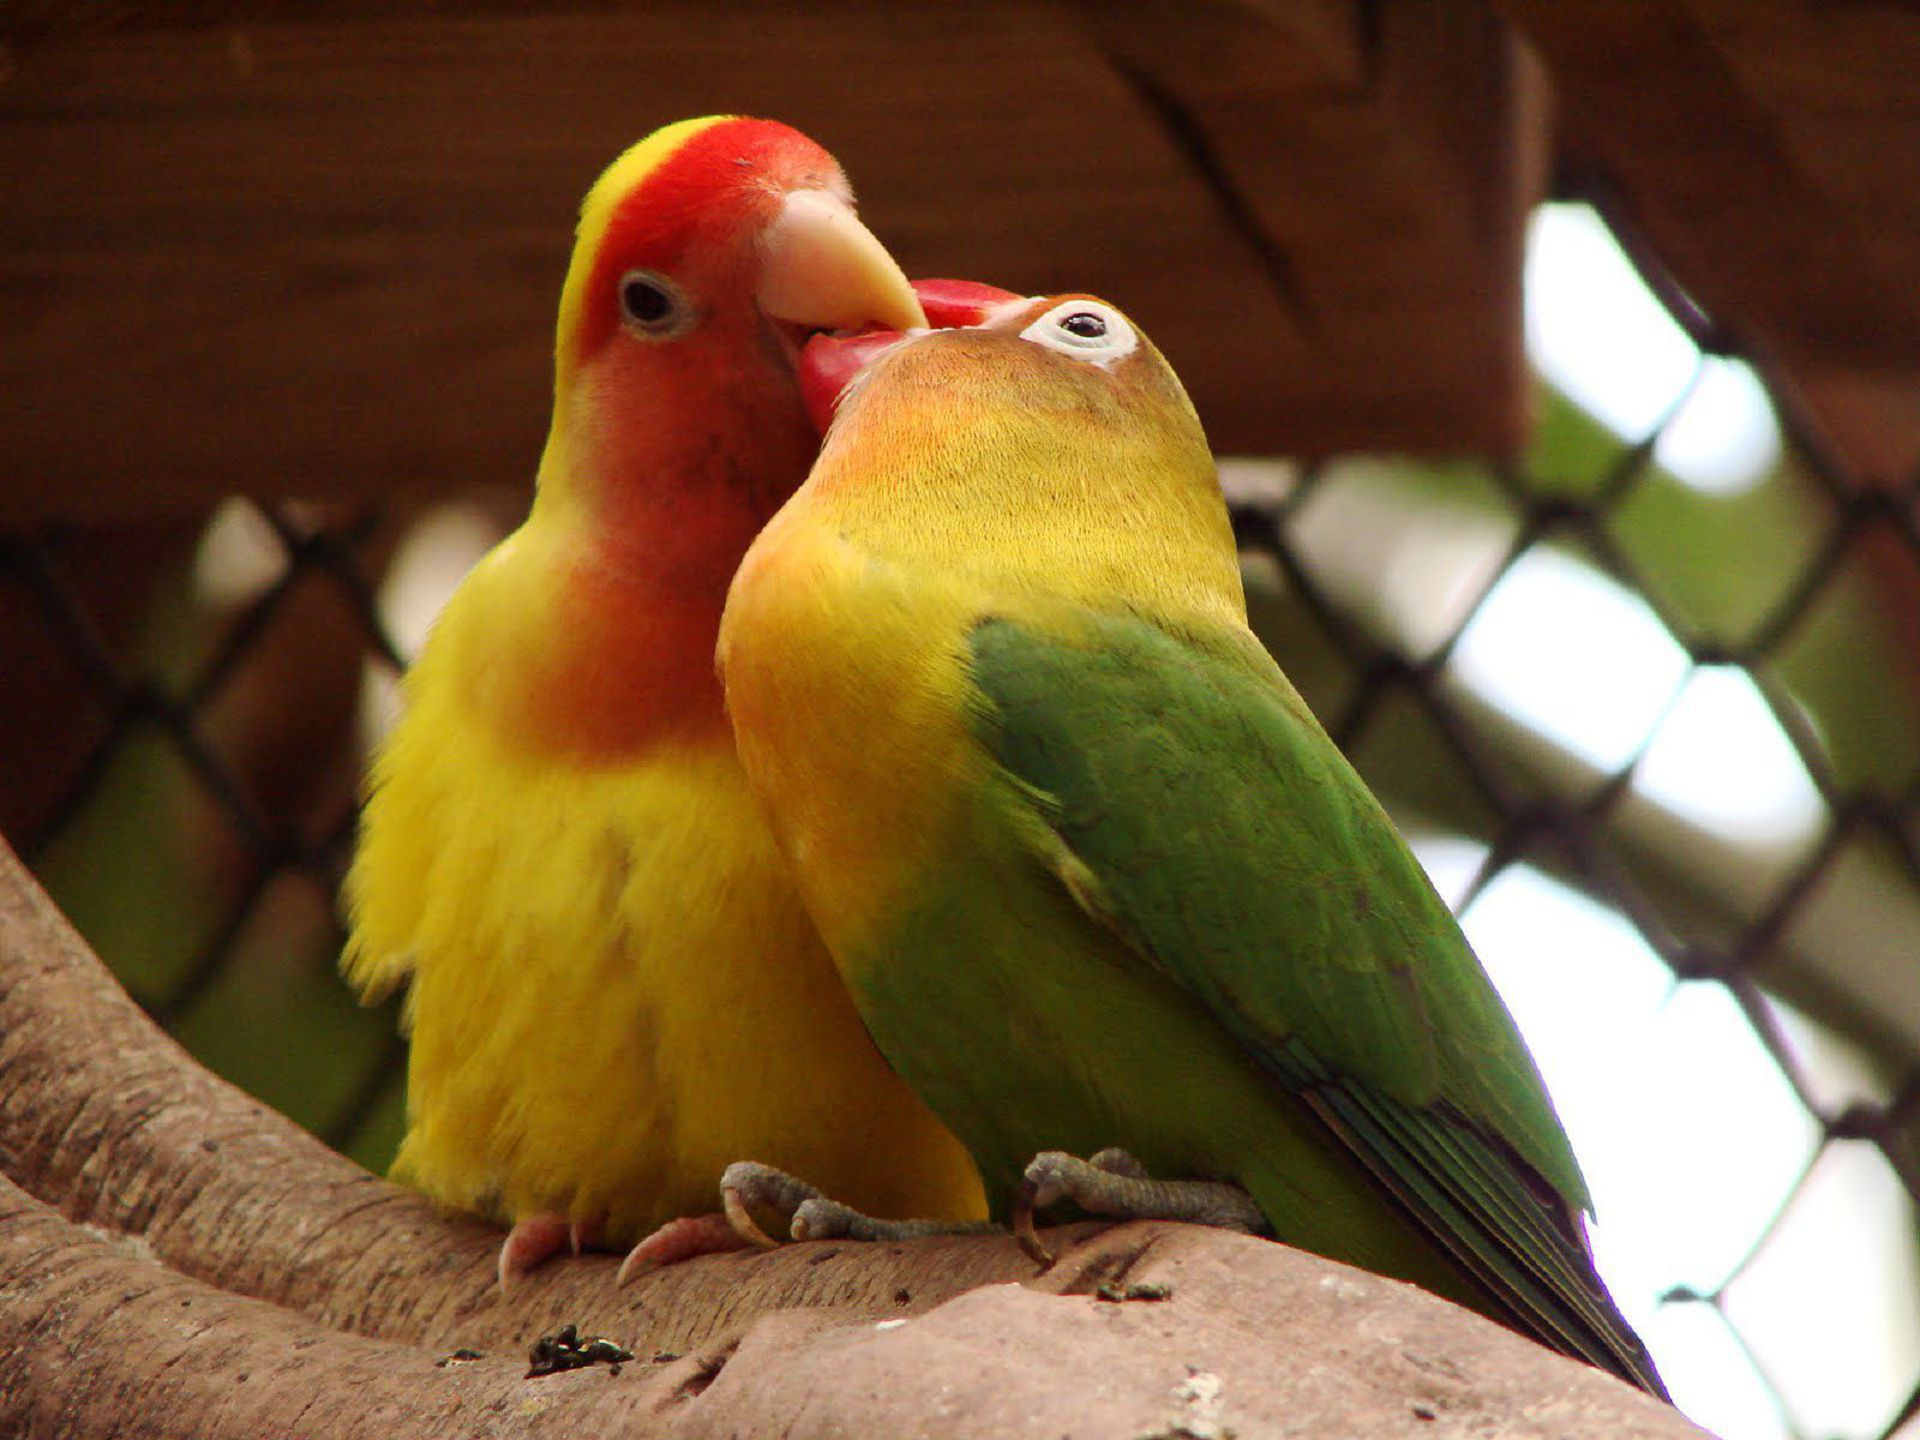 Aves Exoticas Images